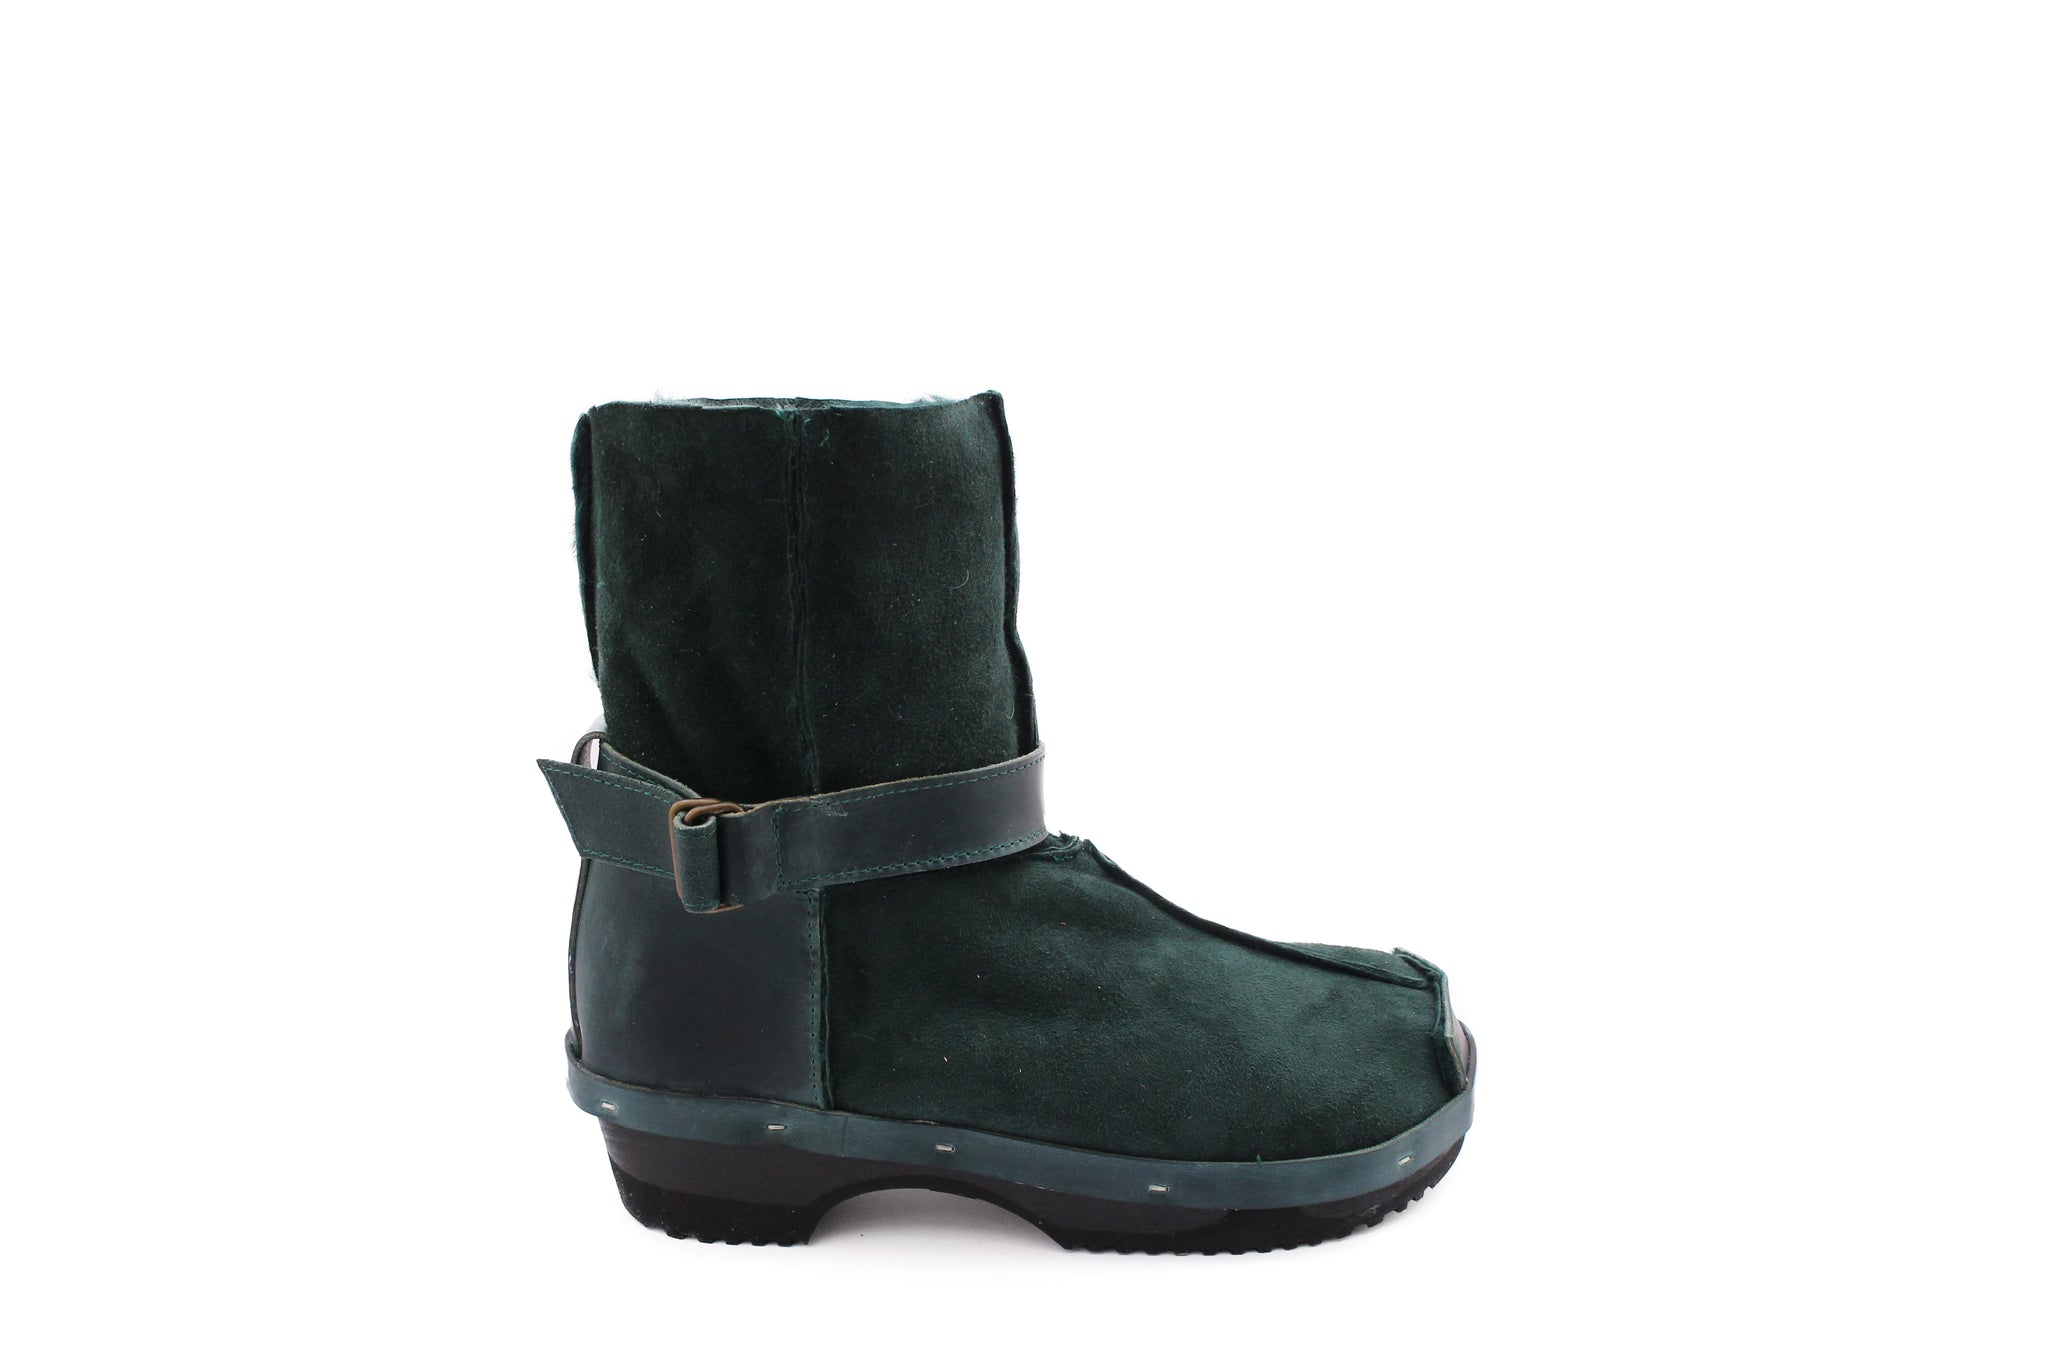 OLGA BOOTS emerald strap black sole